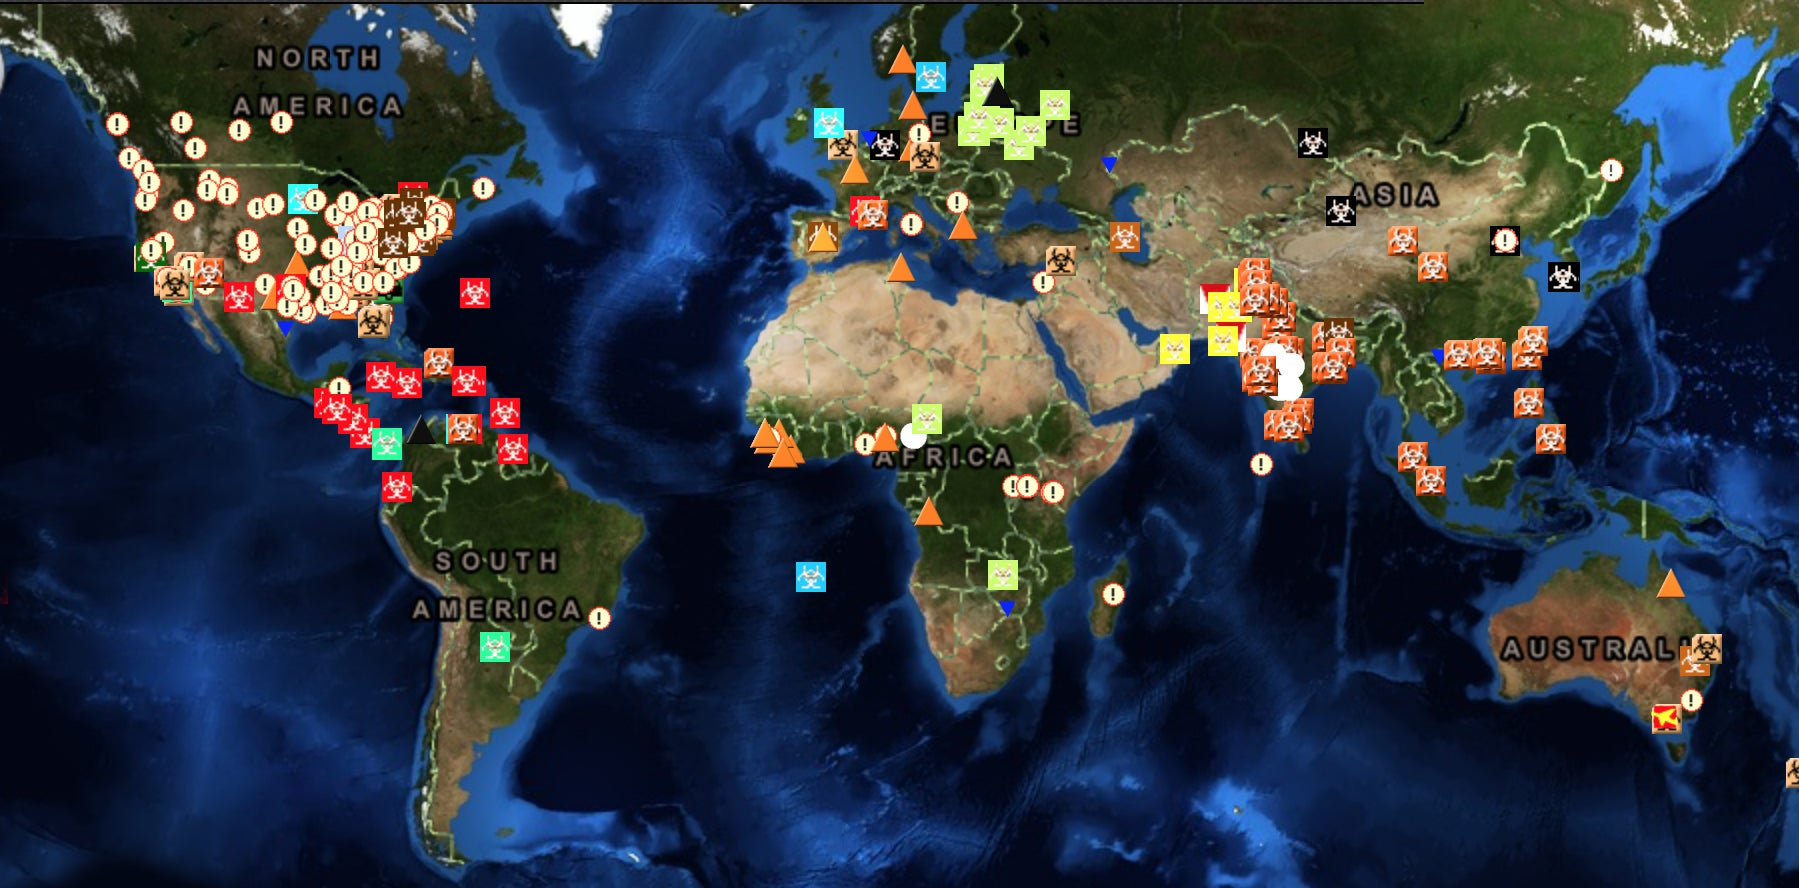 Global incident maps tell you how screwed the world is in real time